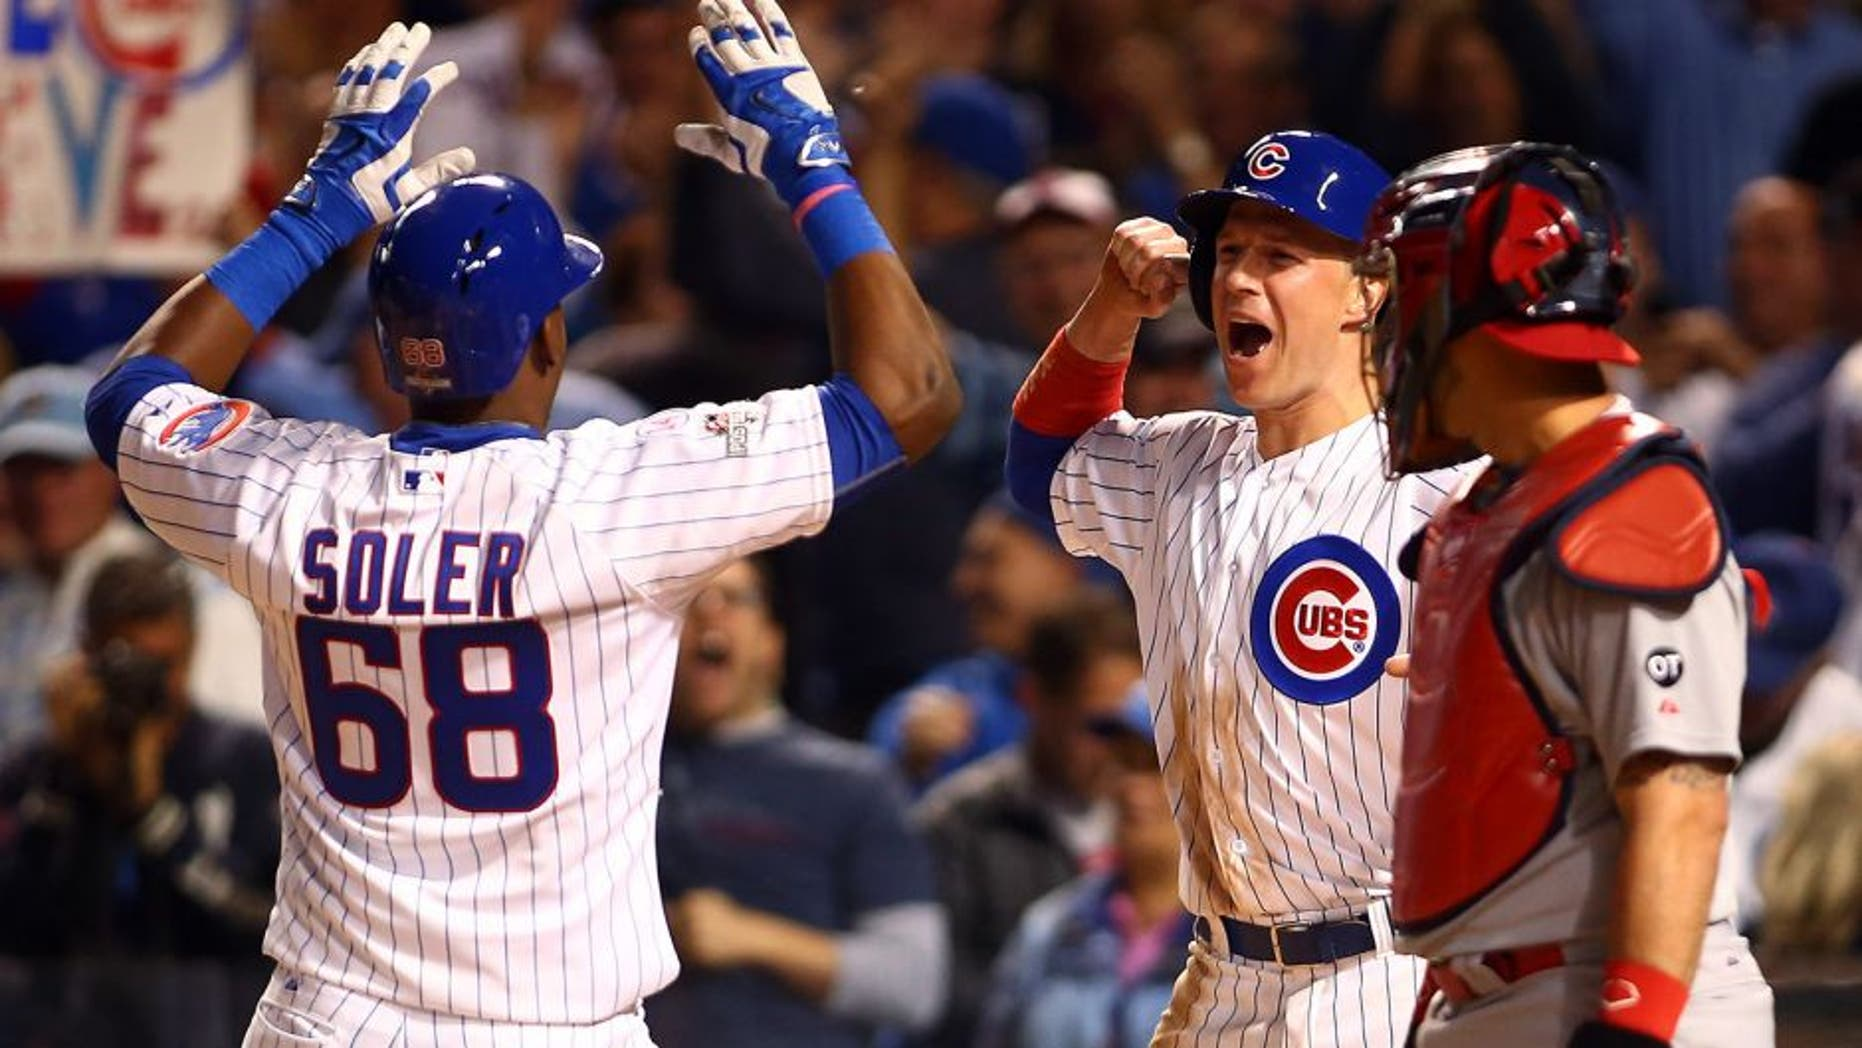 Oct 12, 2015; Chicago, IL, USA; Chicago Cubs right fielder Jorge Soler (68) celebrates with left fielder Chris Coghlan (8) after hitting a two run home run during the sixth inning against the St. Louis Cardinals in game three of the NLDS at Wrigley Field. Mandatory Credit: Jerry Lai-USA TODAY Sports